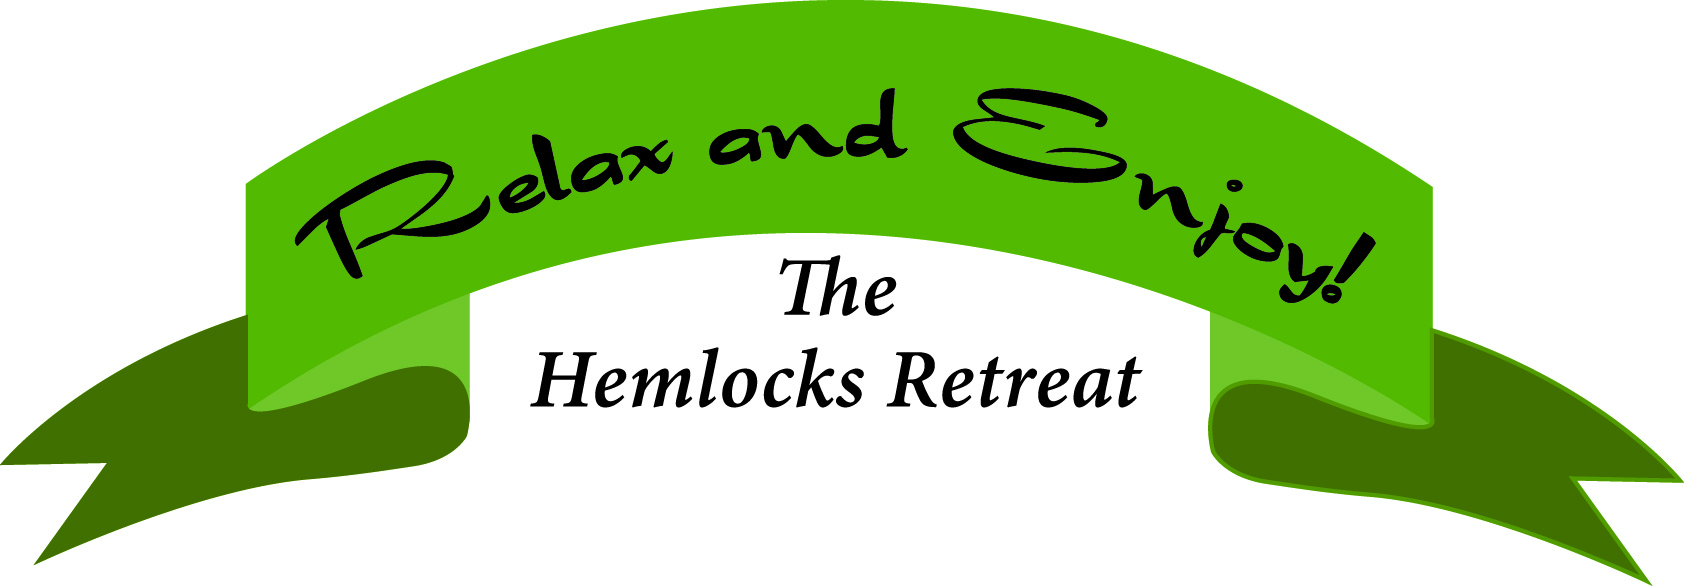 Hemlocks logo in jpeg